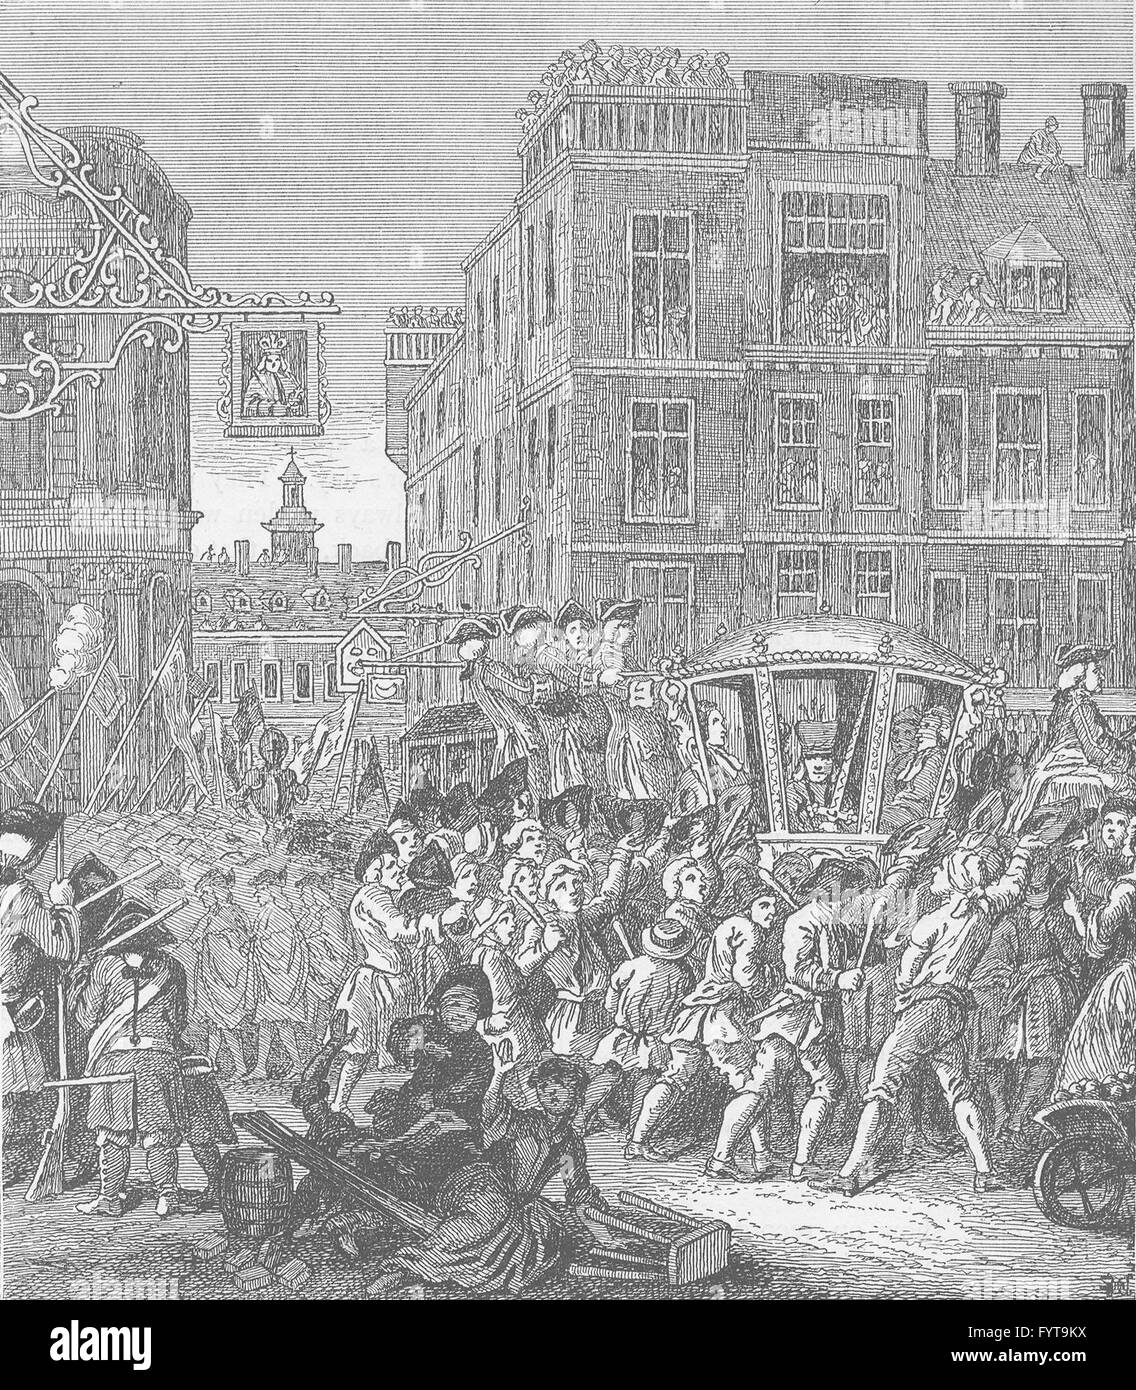 CHEAPSIDE: The Lord Mayor's procession (Hogarth's Industrious Apprentice), c1880 - Stock Image